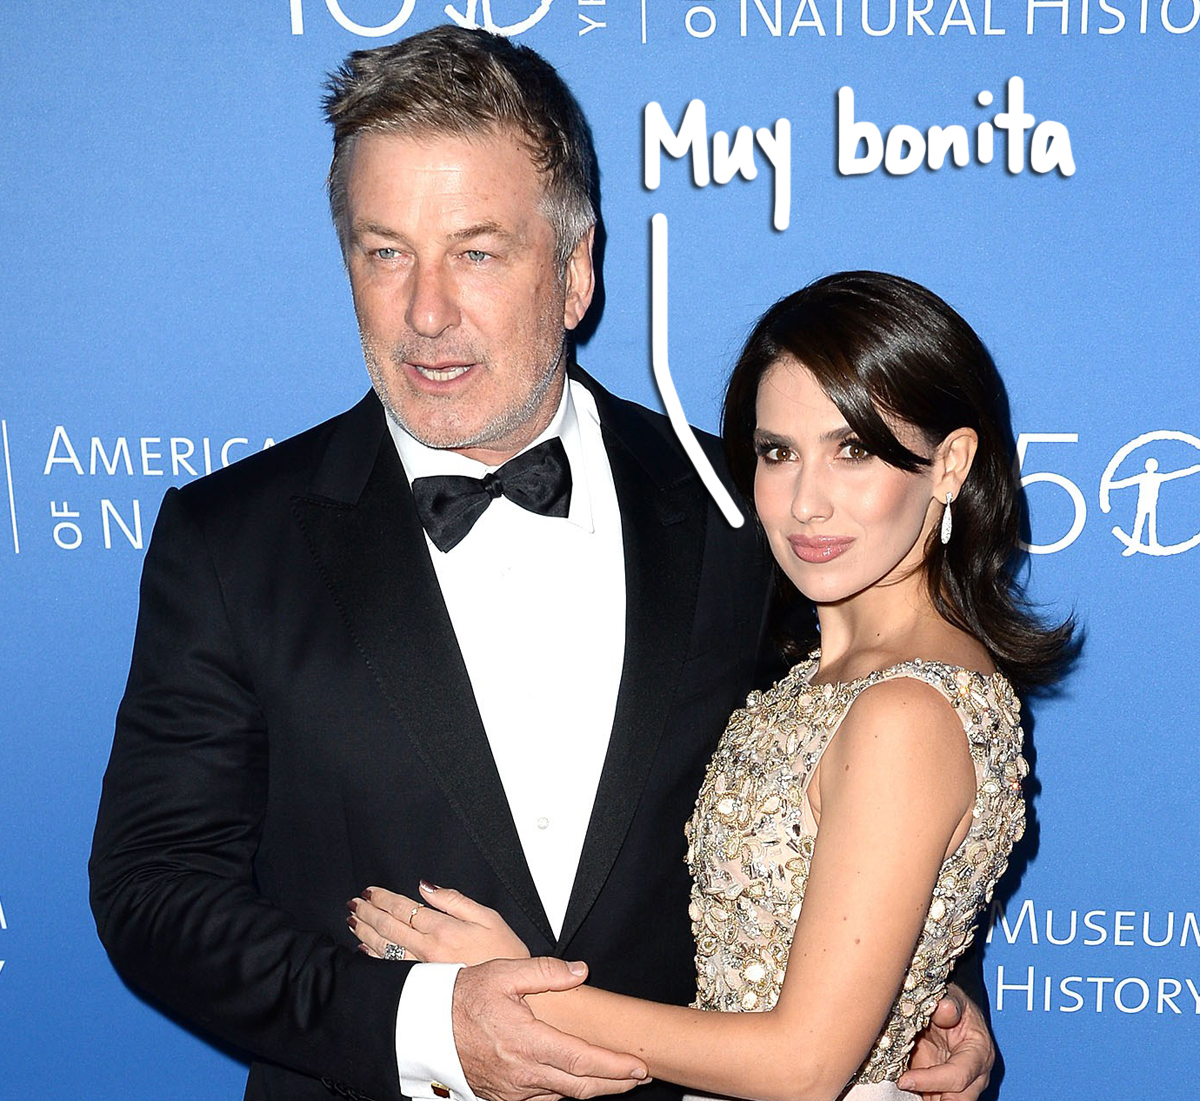 OMG Even Hilaria & Alec Baldwin's Wedding Was Spanish Themed -- Inspired By Hilaria's 'Culture'!